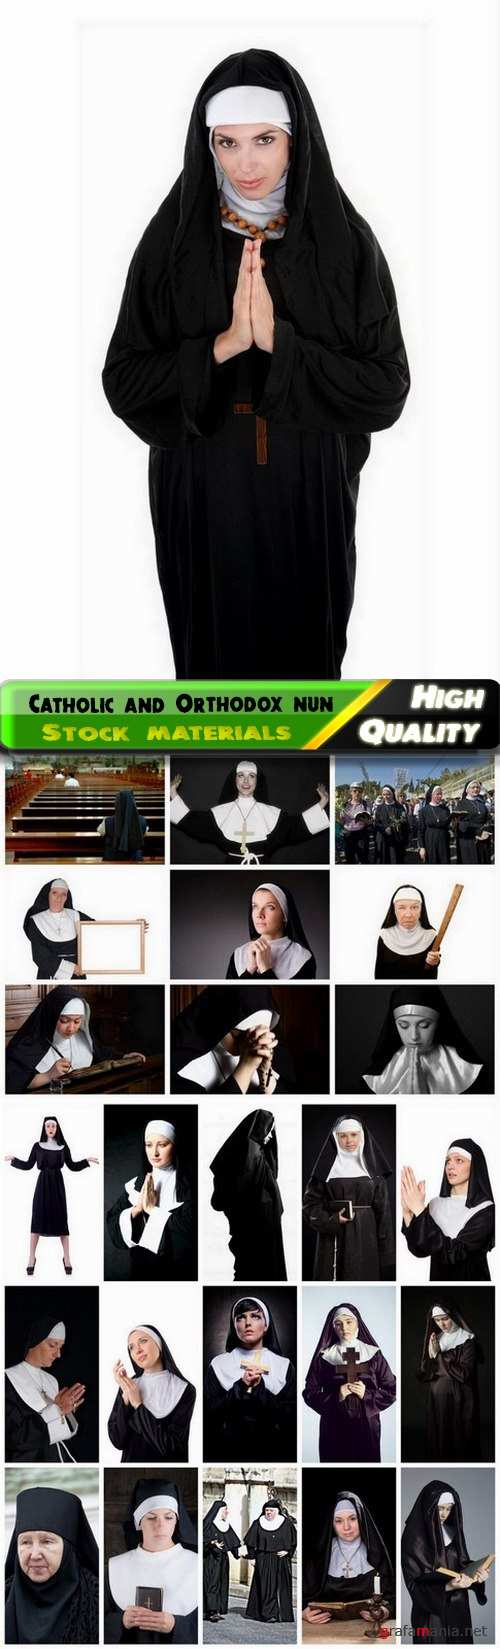 Catholic and Orthodox nun in a black cassock - 25 HQ Jpg